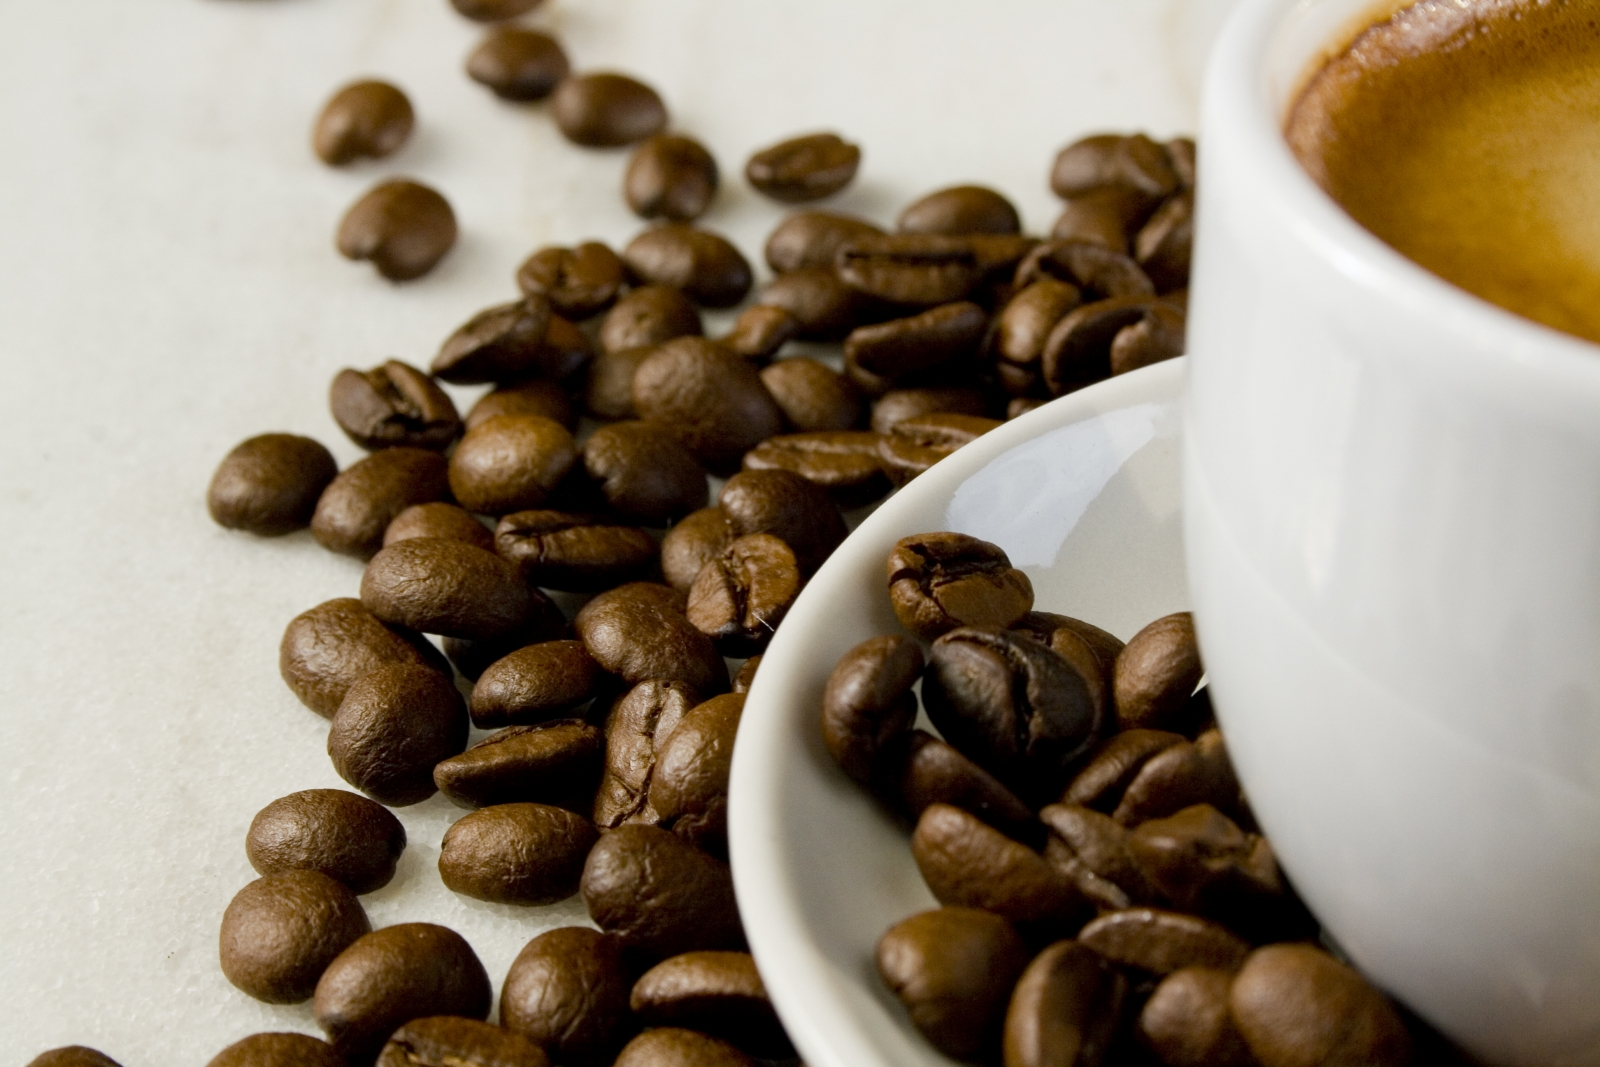 New Studies Show Coffee Drinkers May Live Longer